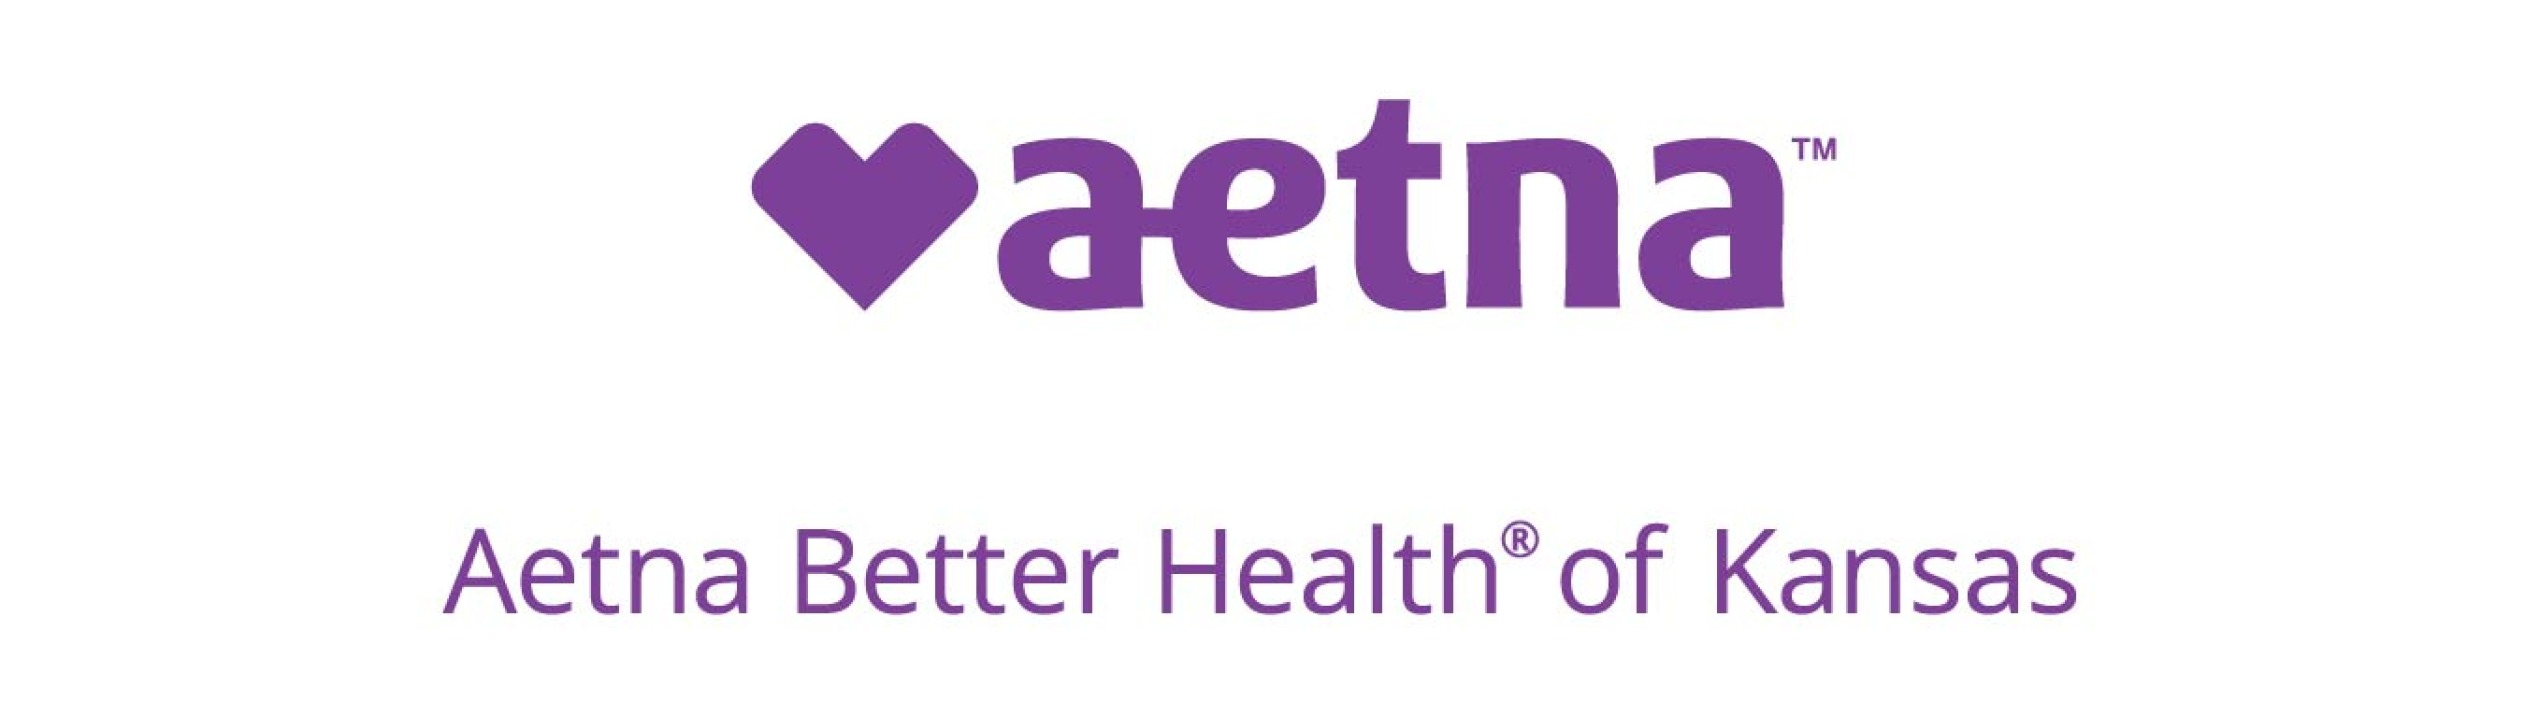 Aetna Better Health of Kansas logo